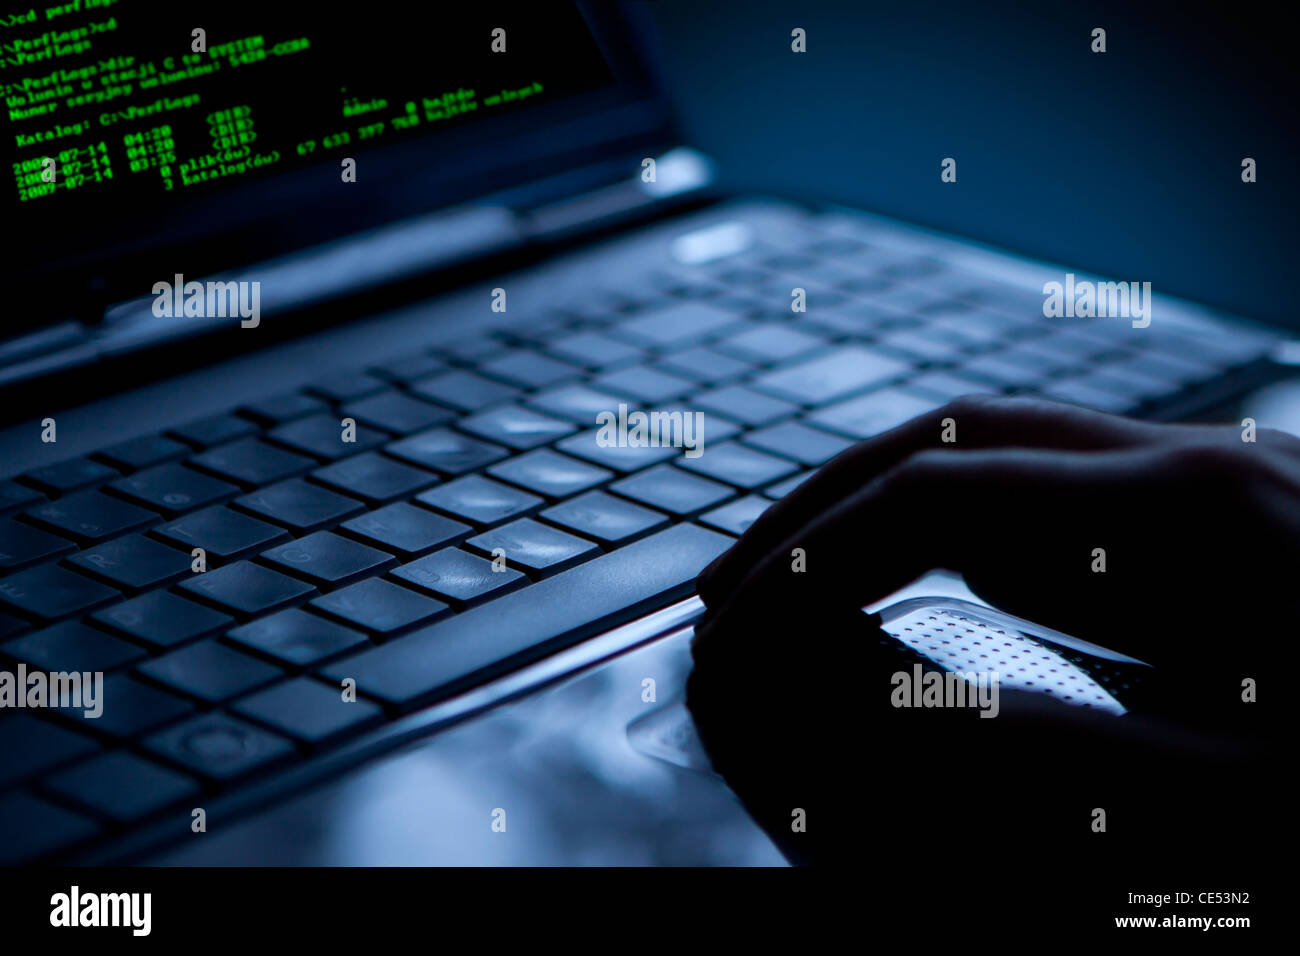 Hacker using laptop. Lots of digits on the computer screen. - Stock Image